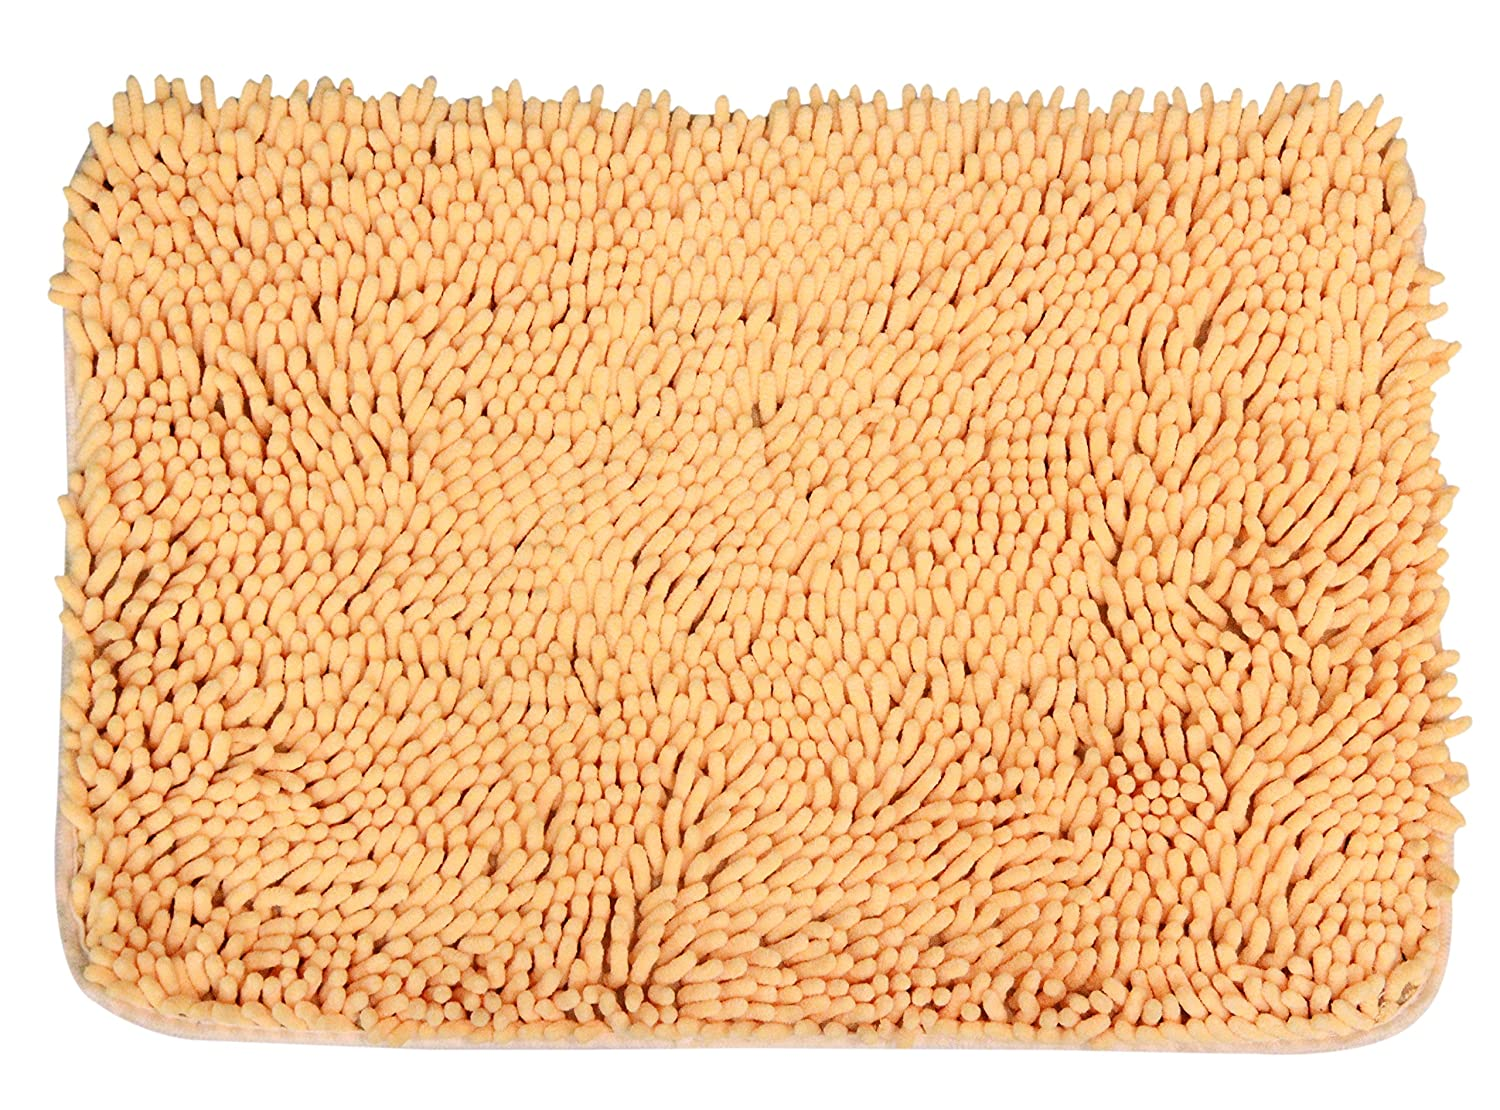 JustNile Microfiber Soft Bathroom Floor Mat/Shower Rug - 16 X 24 Yellow COMIN16JU004617